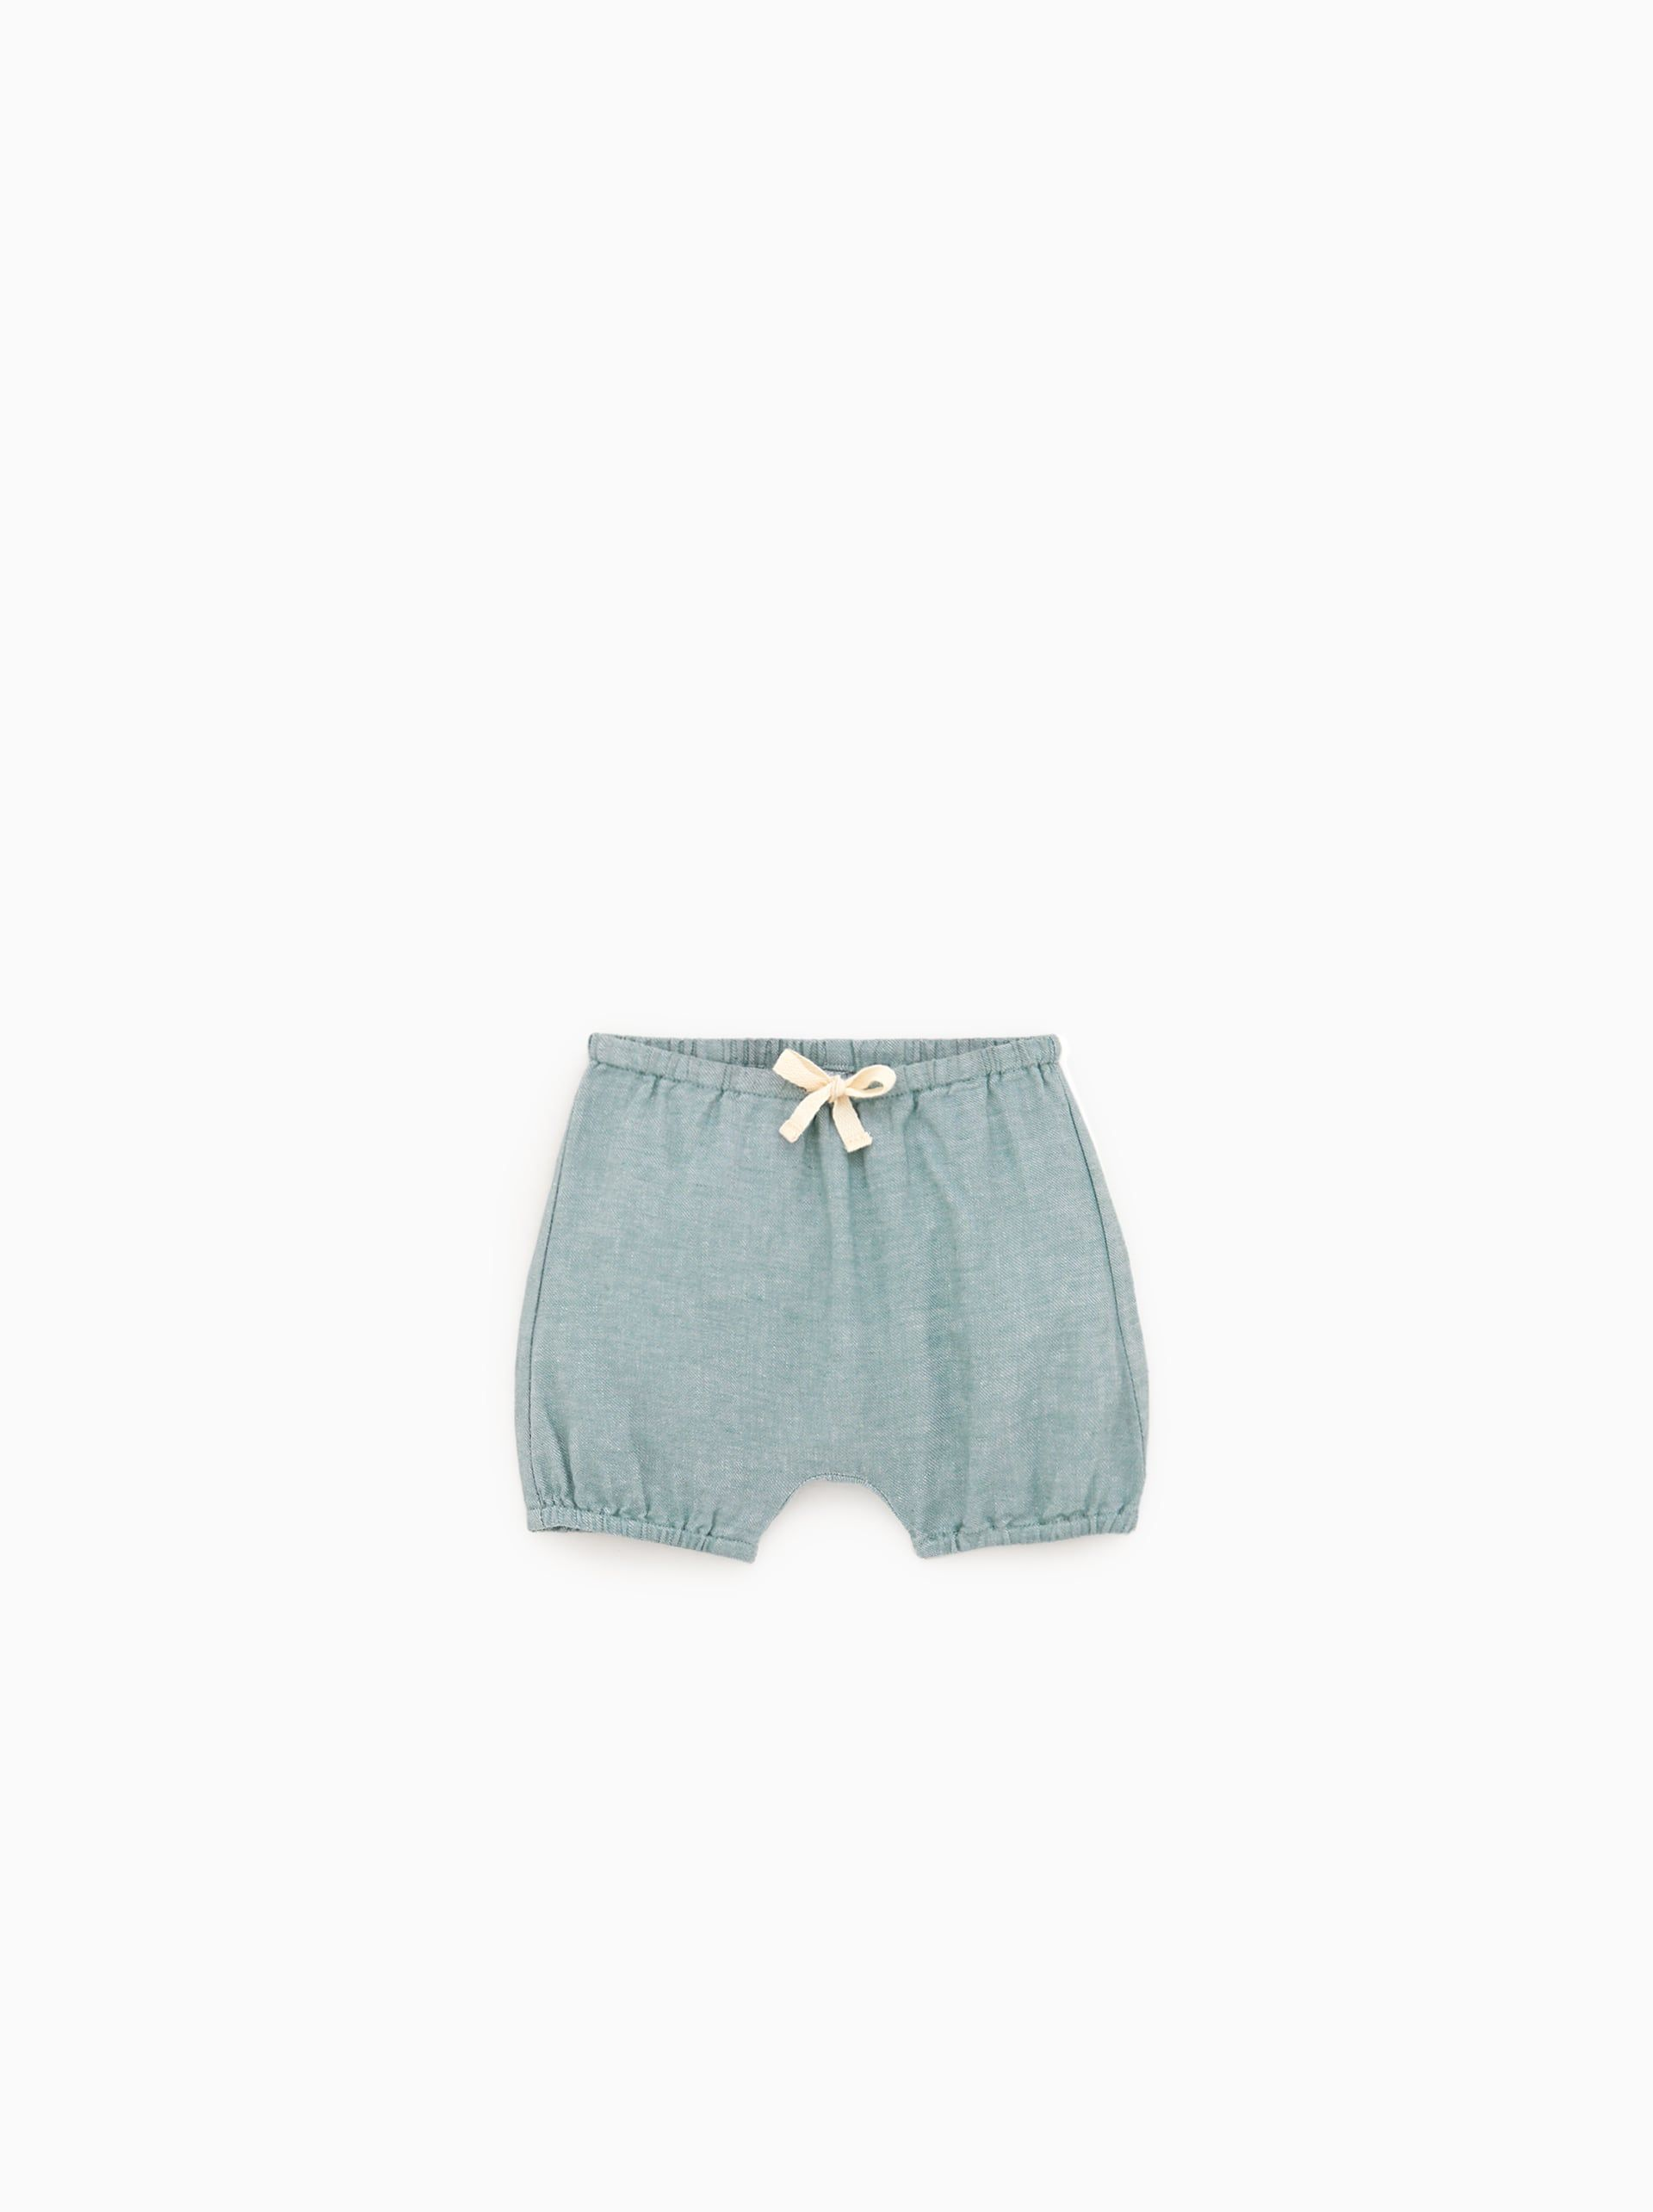 8f6697a44 TEXTURED WEAVE SHORTS - NEW IN-MINI | 0-12 mth-KIDS | ZARA United States